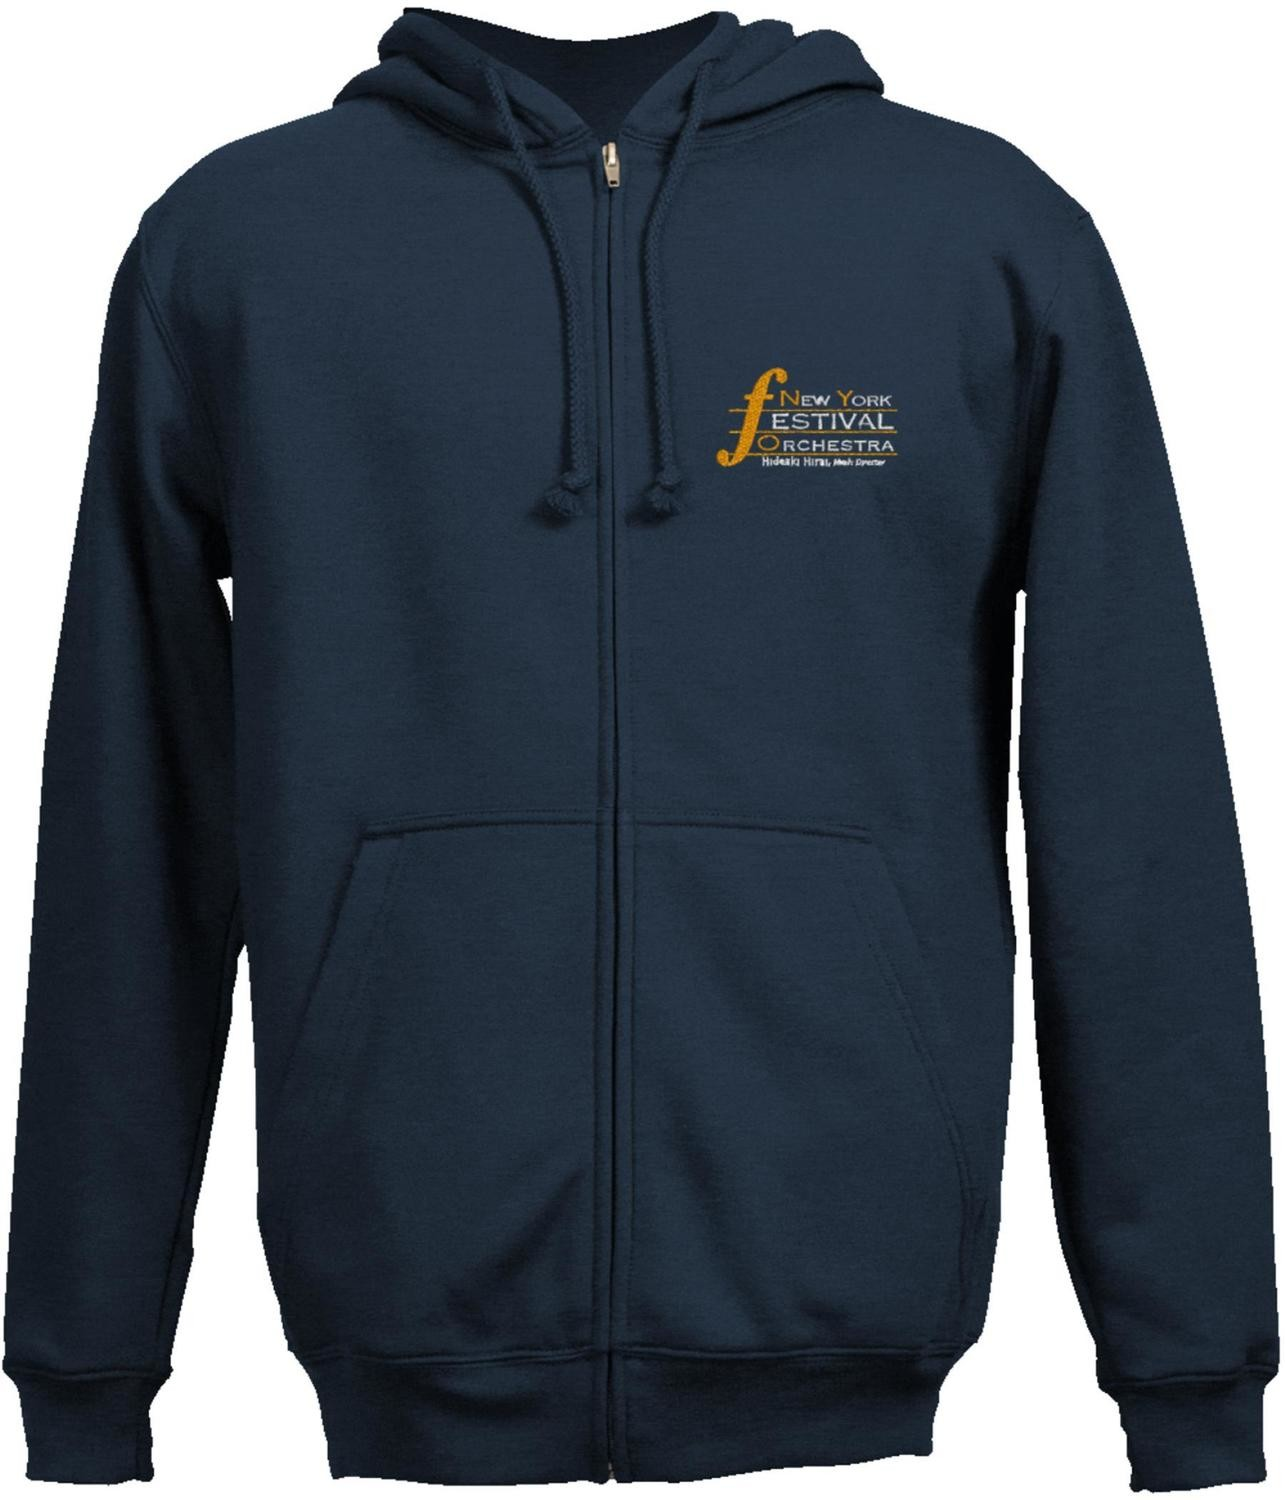 Hoodie with Embroidered NYFO Logo